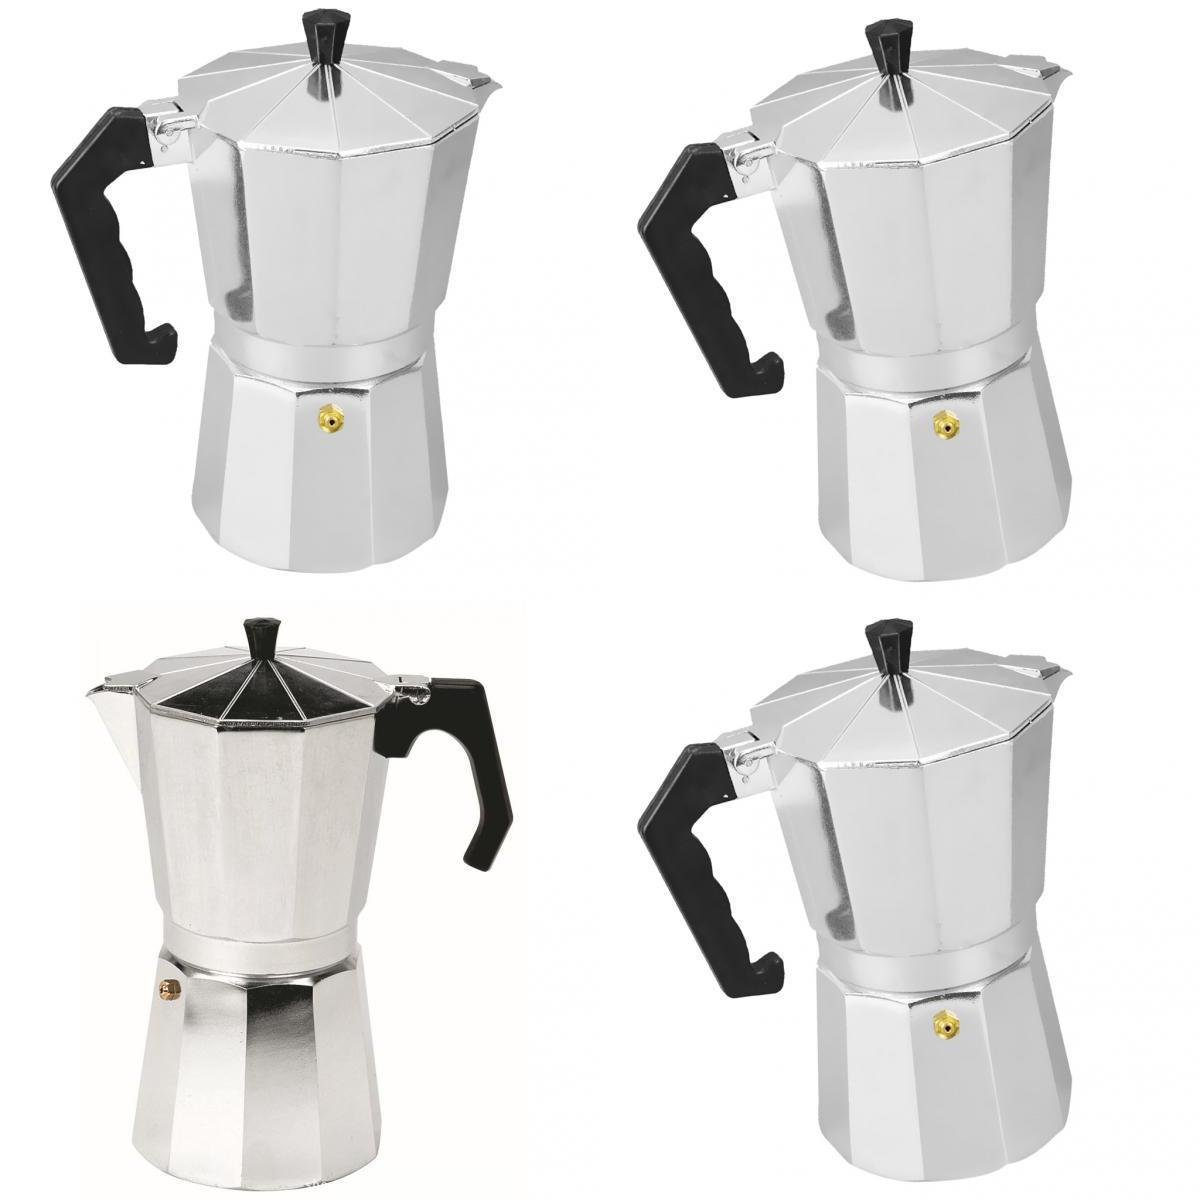 MagiDeal 4 Pieces Aluminum Coffee Moka Maker Pot Expresso Latte Stove Percolator 3/6/9/12 Cups